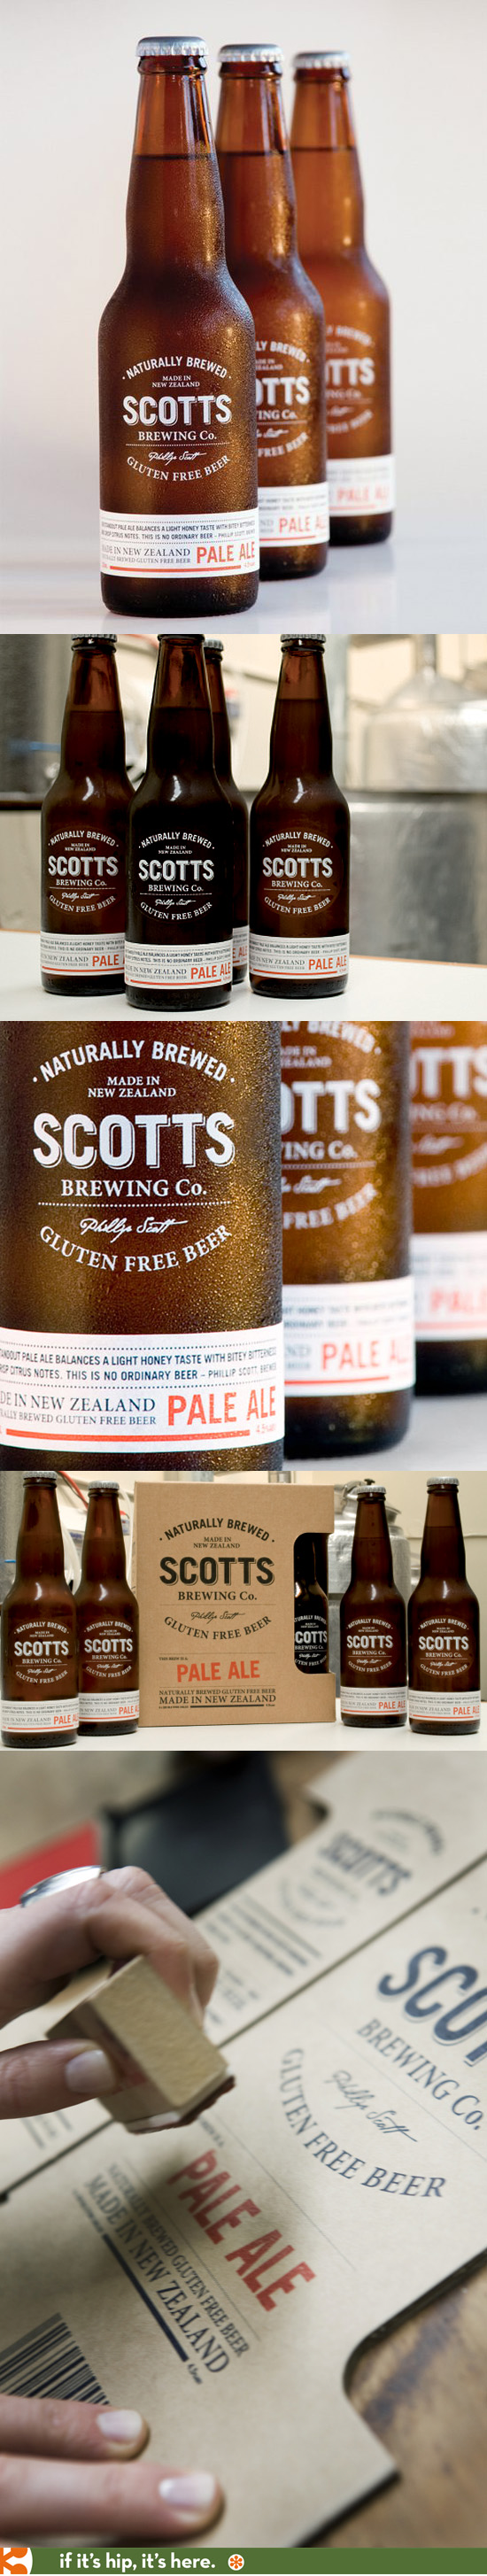 Packaging and identity for Scotts Brewing Company's gluten